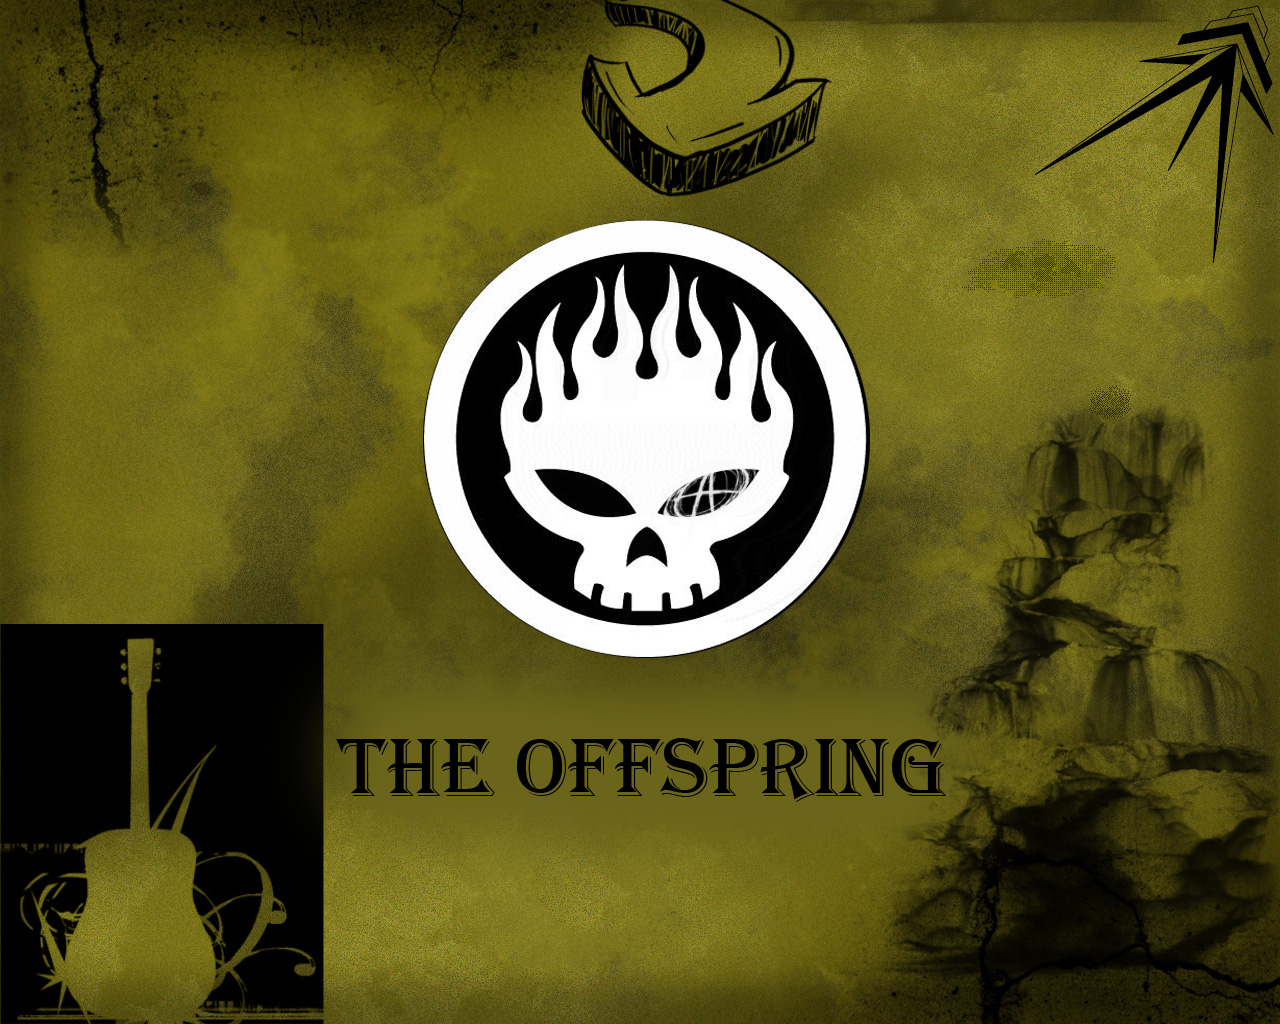 http://4.bp.blogspot.com/_m0HjpLBg8K0/TSX1f59yGvI/AAAAAAAAACw/n_Vb7MFOe_c/s1600/The+Offspring+Wallpaper.jpg